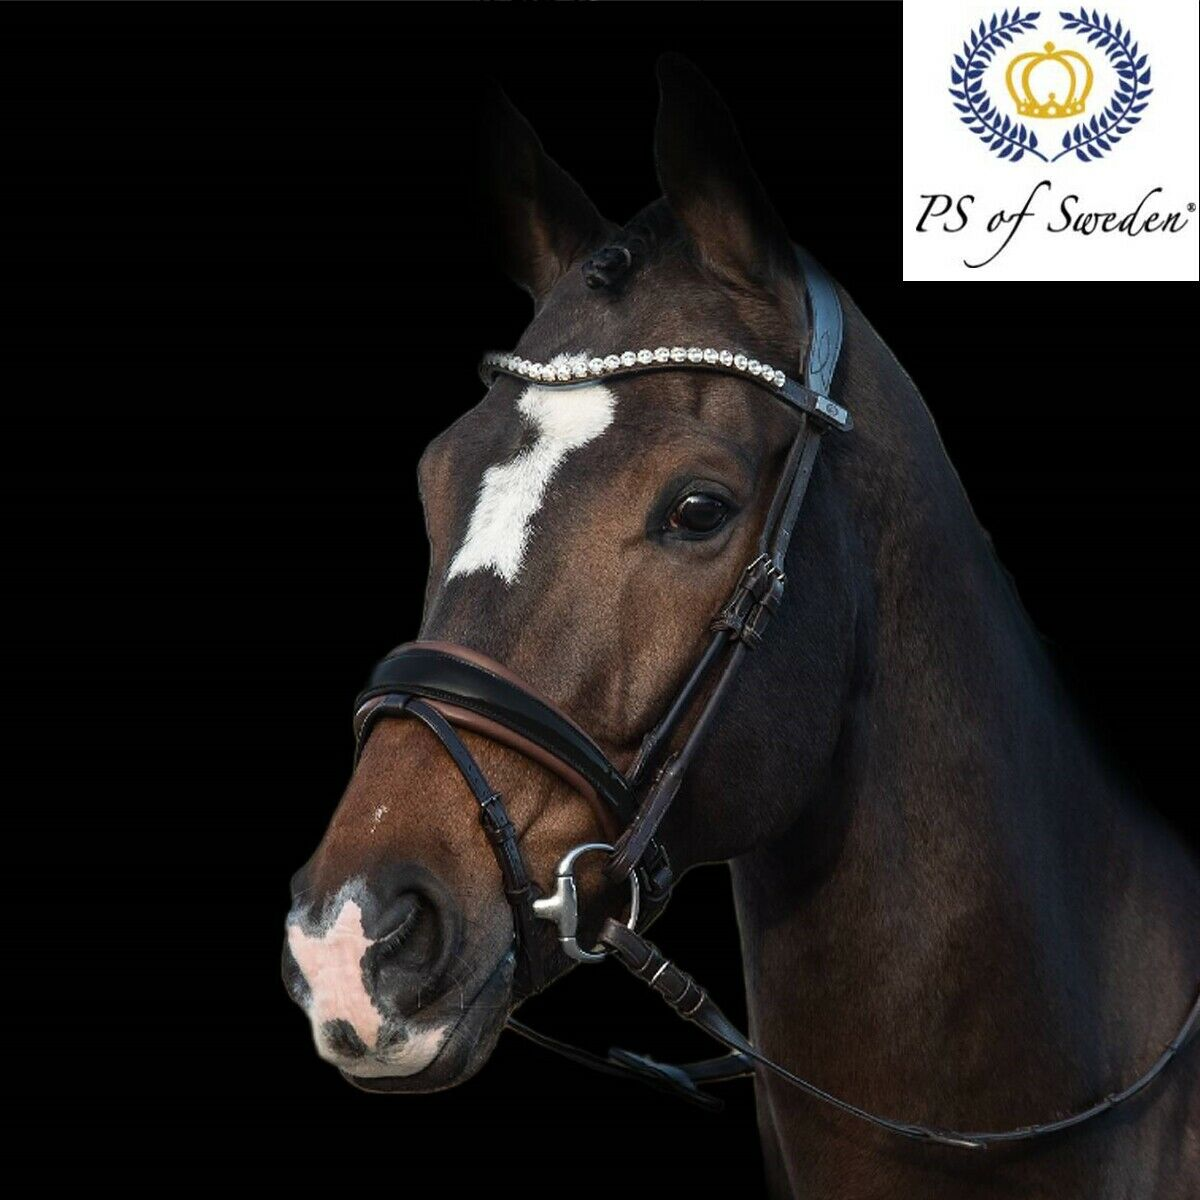 PS of Sweden GP Bridle - Free UK Shipping